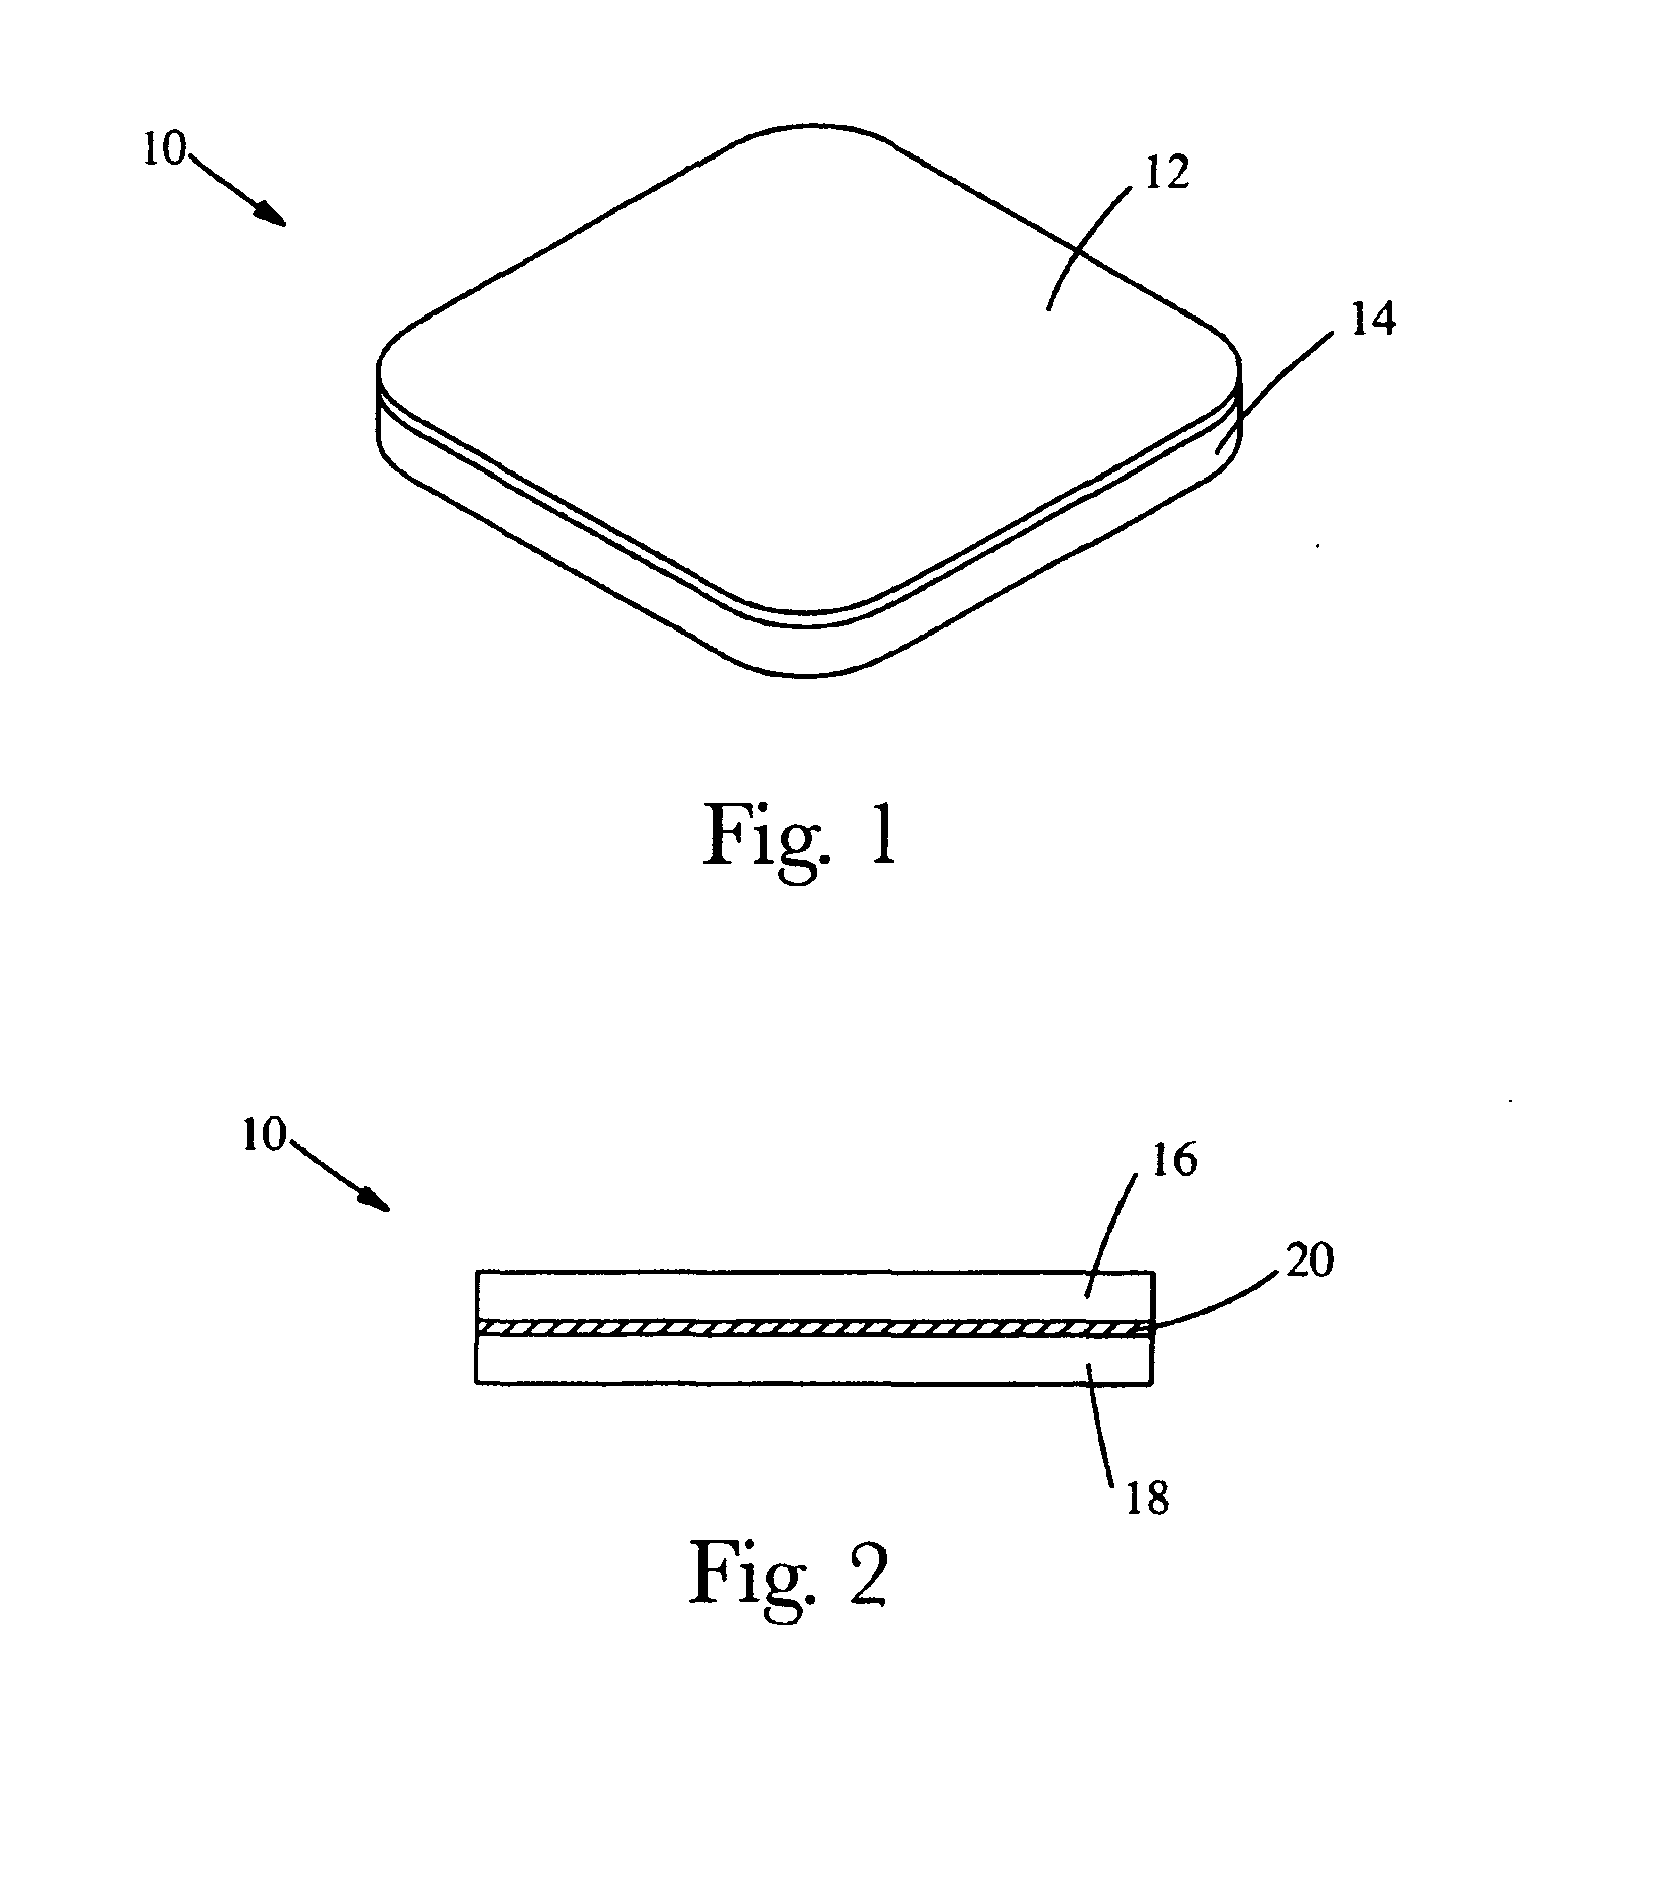 Ep2355774b1 A Porous Dissolvable Solid Substrate And